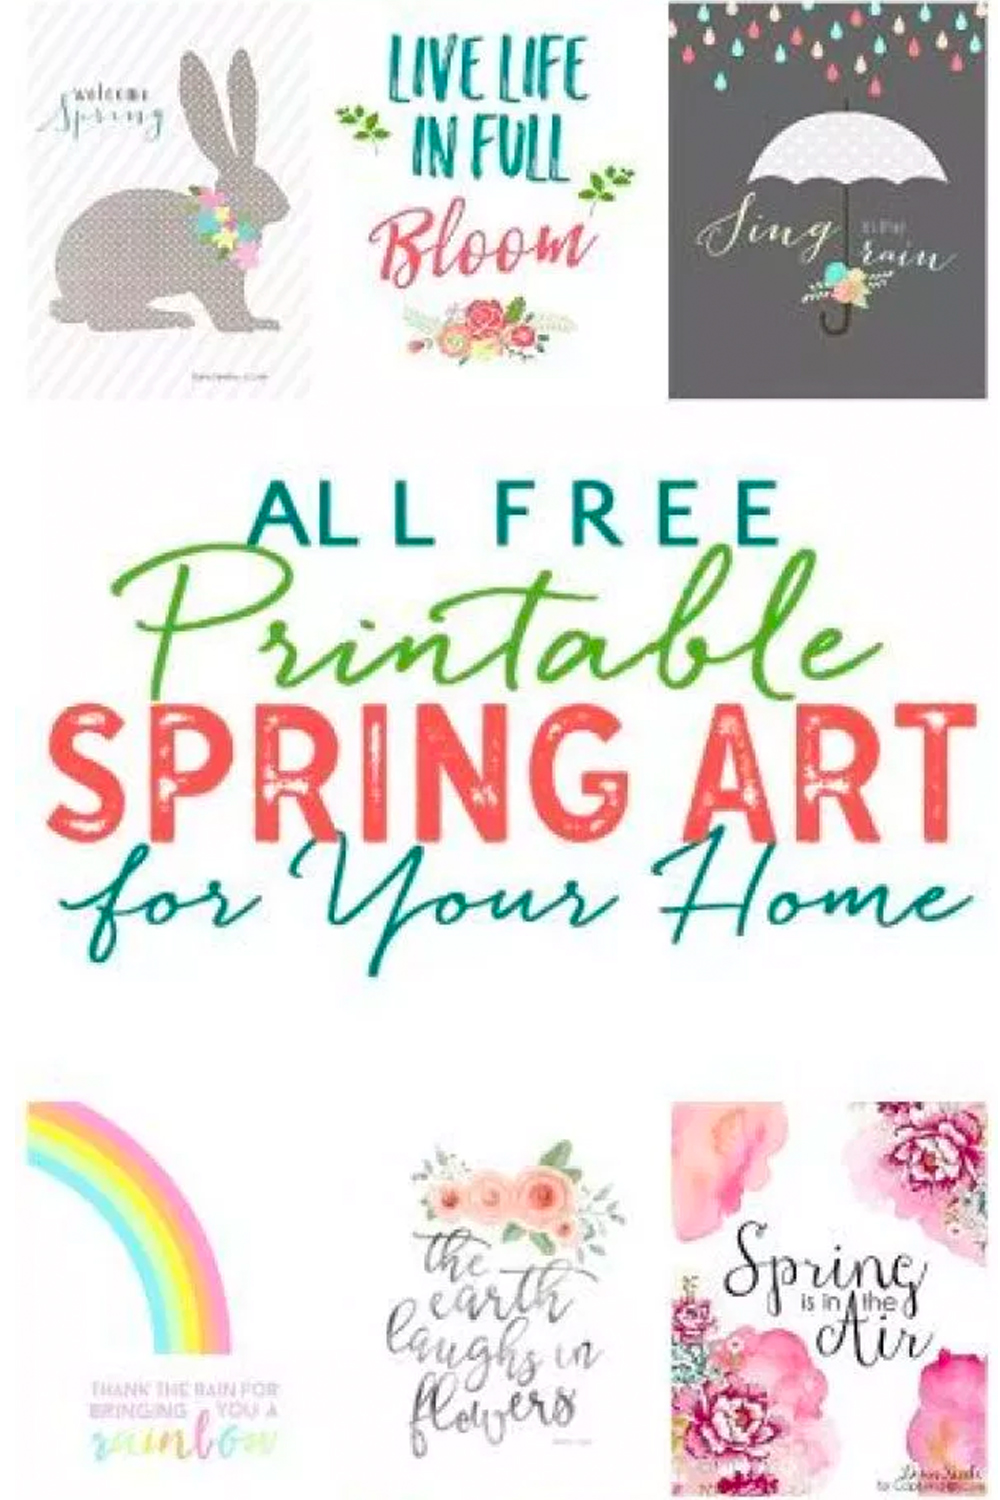 graphic about Spring Printable called Really Cost-free Spring Printables: Spring Artwork For Your Residence